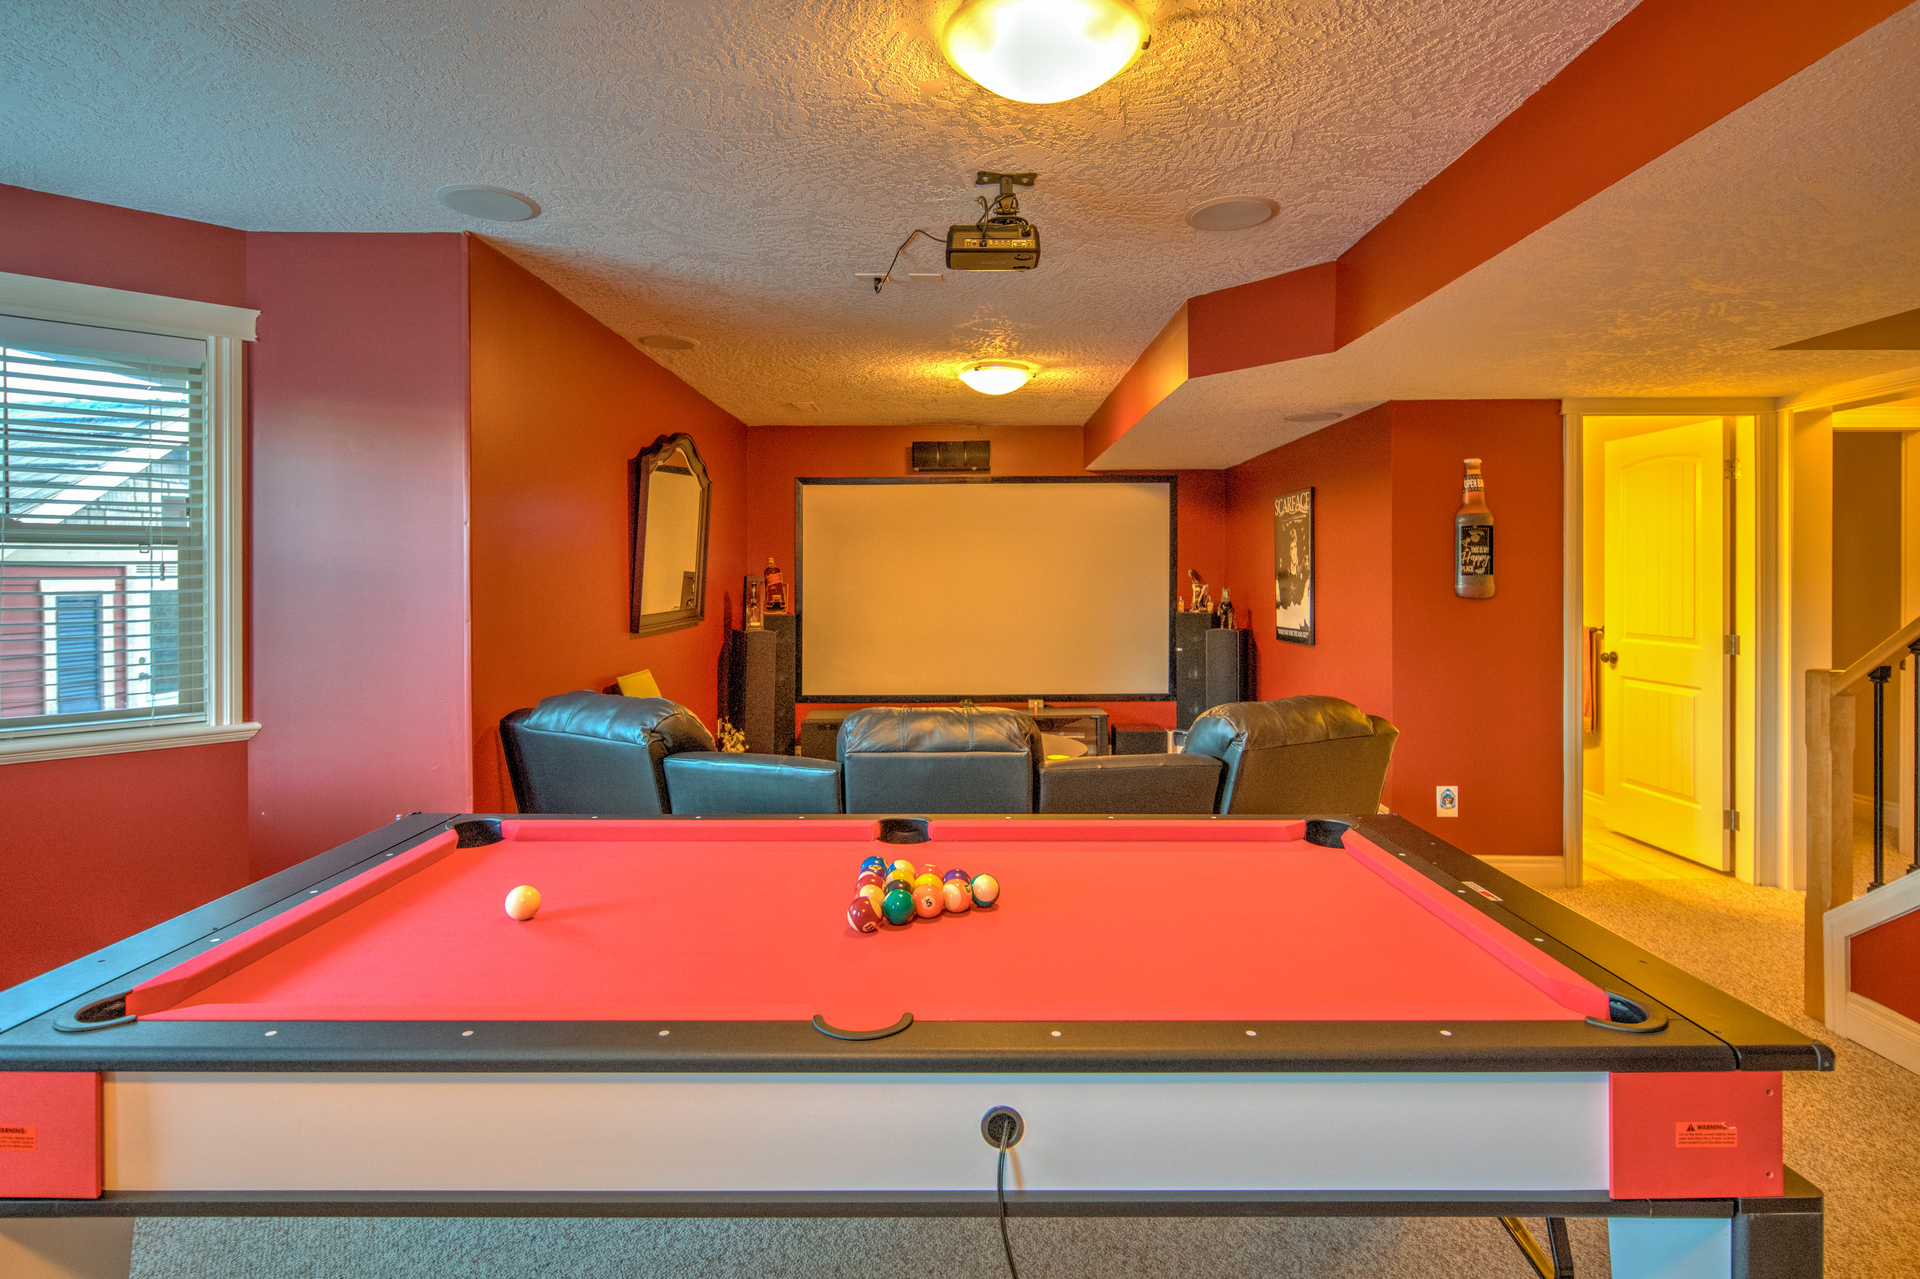 Basement Recreation Room at 2741 Cornerstone Terrace, Mill Hill, Langford